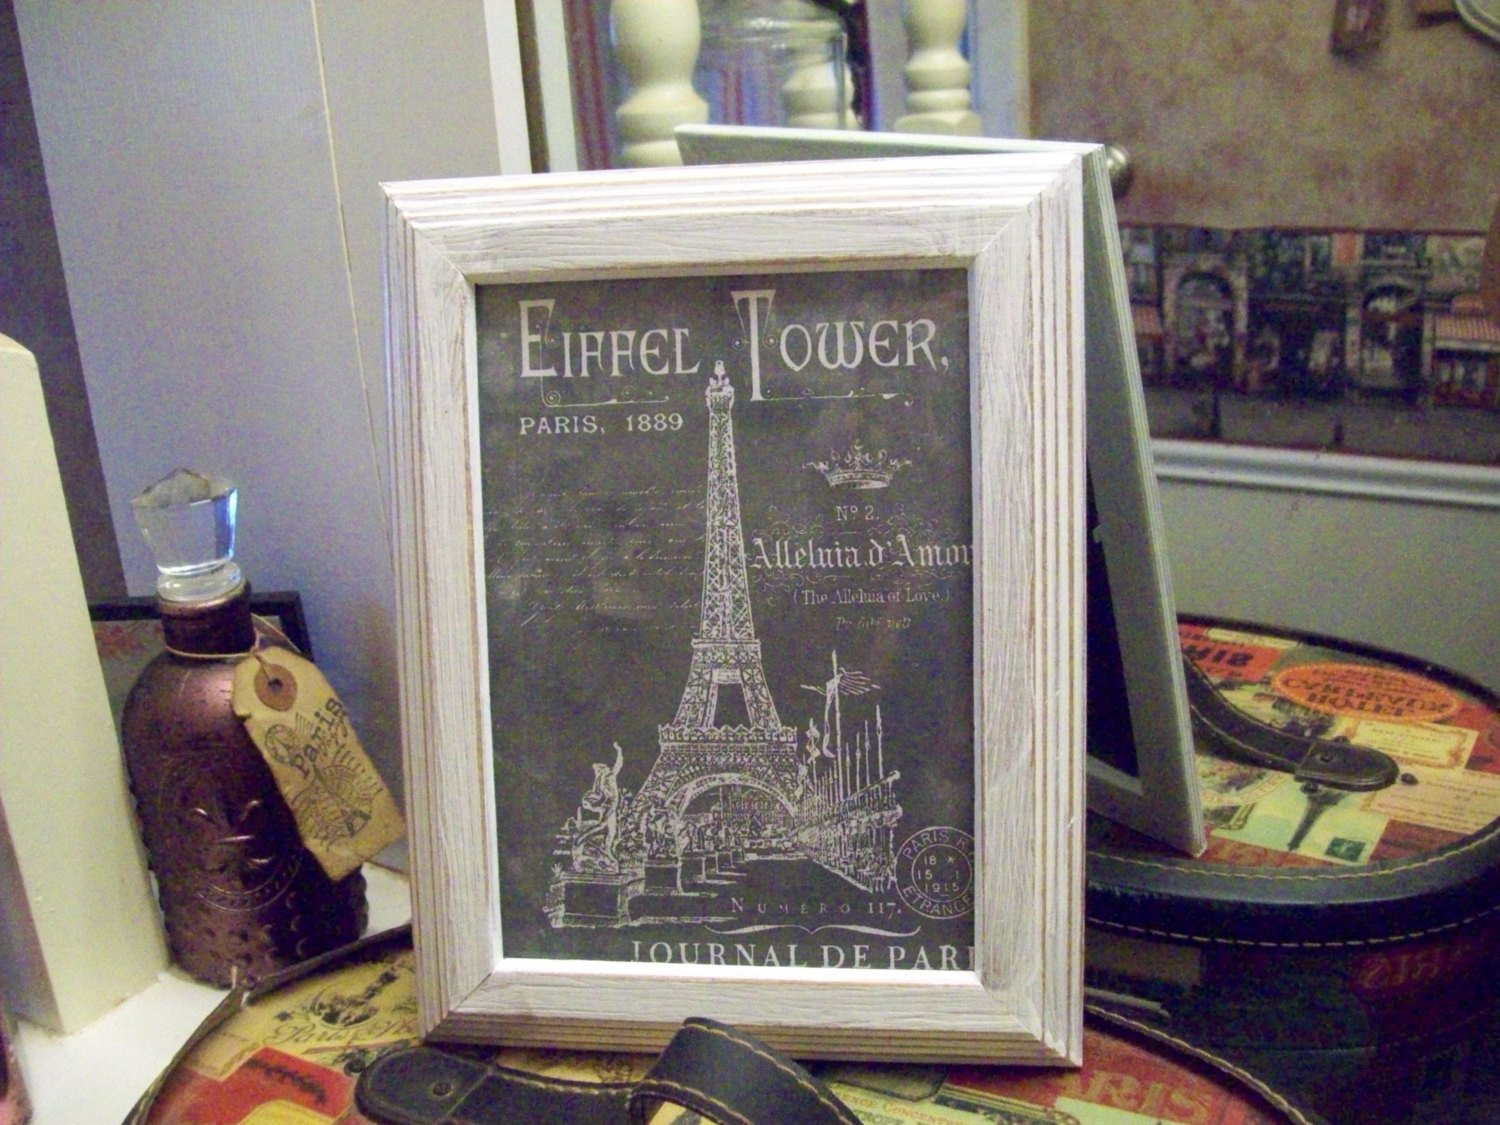 Shabby Chic Bedroom Decor Inspirational Shabby Chic 5x7 Chalkboard Look Eiffel tower Frame Paris Bedroom Decor Wall Decor French Bedroom Shabby Chic Paris Wall Decor